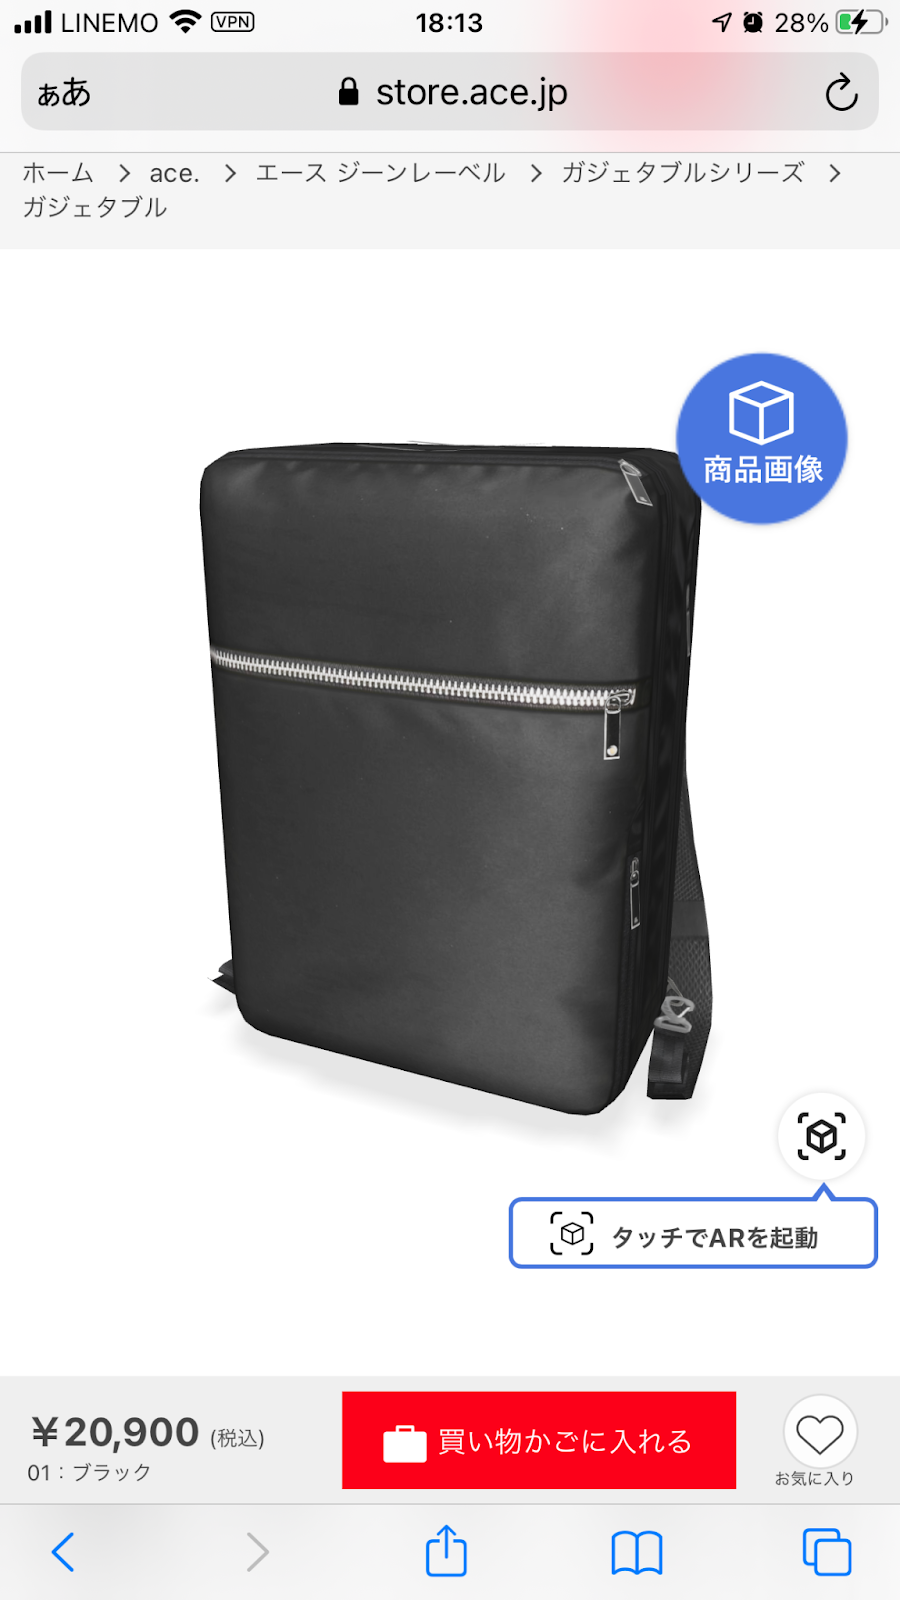 shopify 3Dモデル 成功事例 ACE Online Store